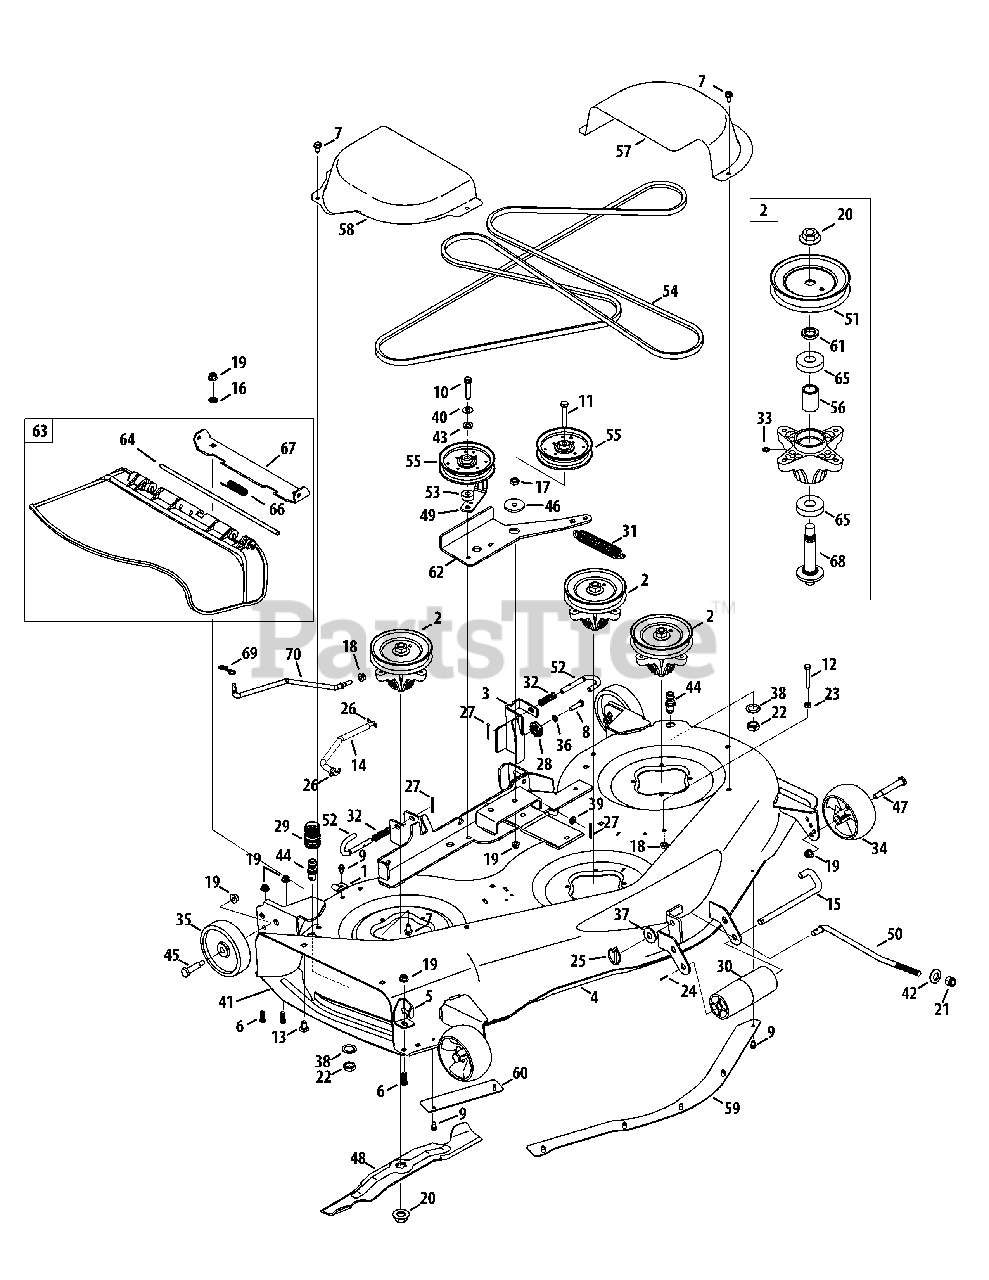 Cub Cadet Parts on the Mower Deck 50-inch Diagram for LTX